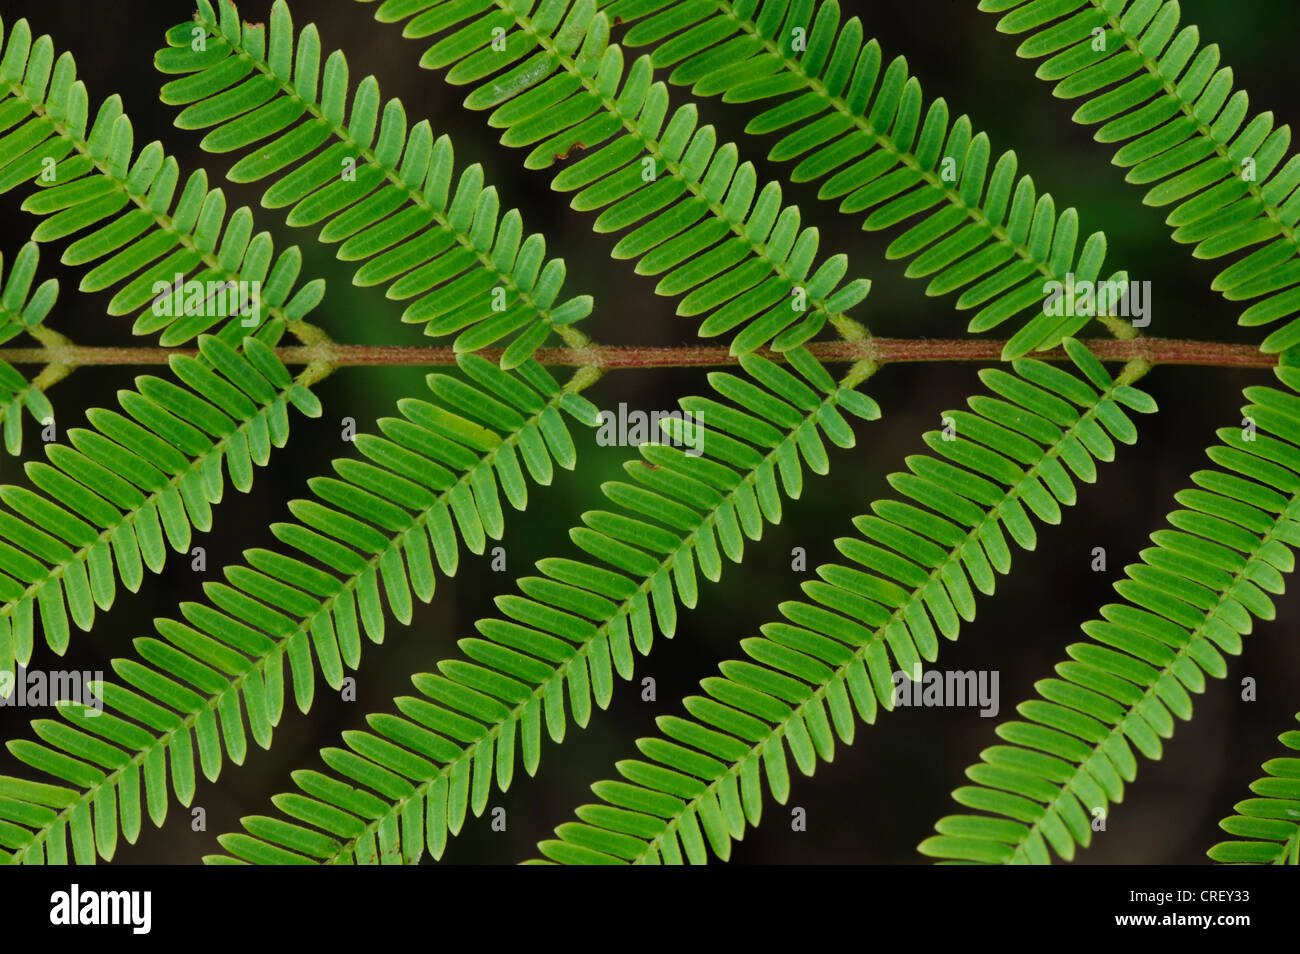 Guajillo Acacia (Acacia berlandieri), leaf pattern, Dinero, Lake Corpus Christi, South Texas, USA - Stock Image